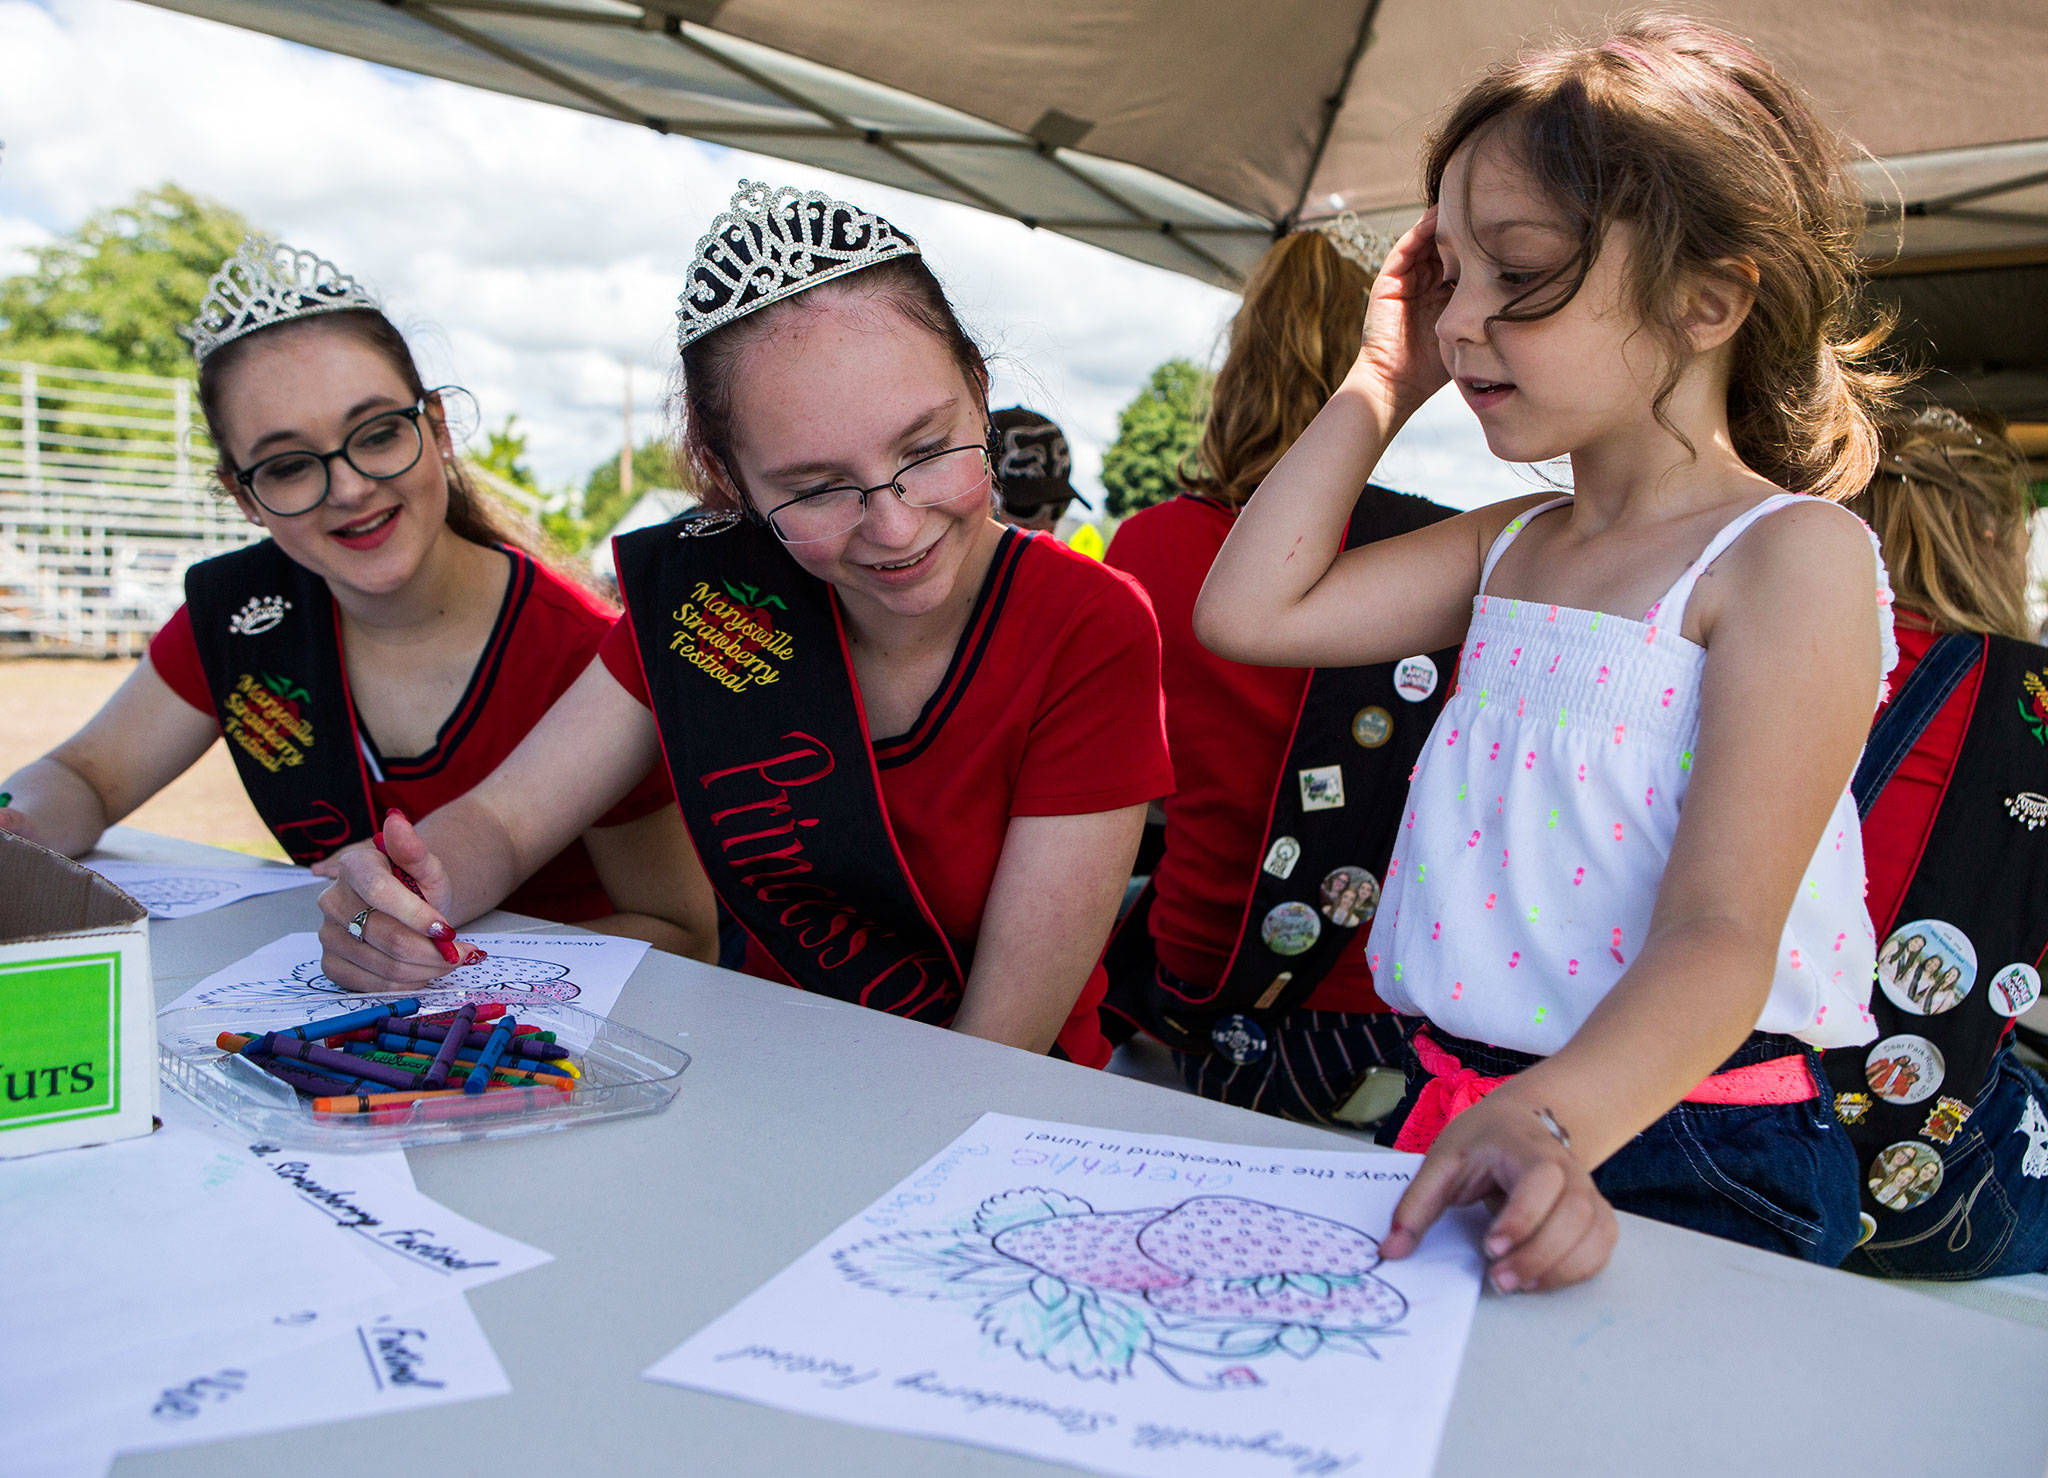 Cheyanne Schwarz, 5, far right, shows Marysville Strawberry Festival princesses Jael Hudson, left, and Bri Olson, center, her finished strawberry coloring sheet during Kids Day at the Strawberry Festival on June 8 in Marysville. (Olivia Vanni / The Herald)